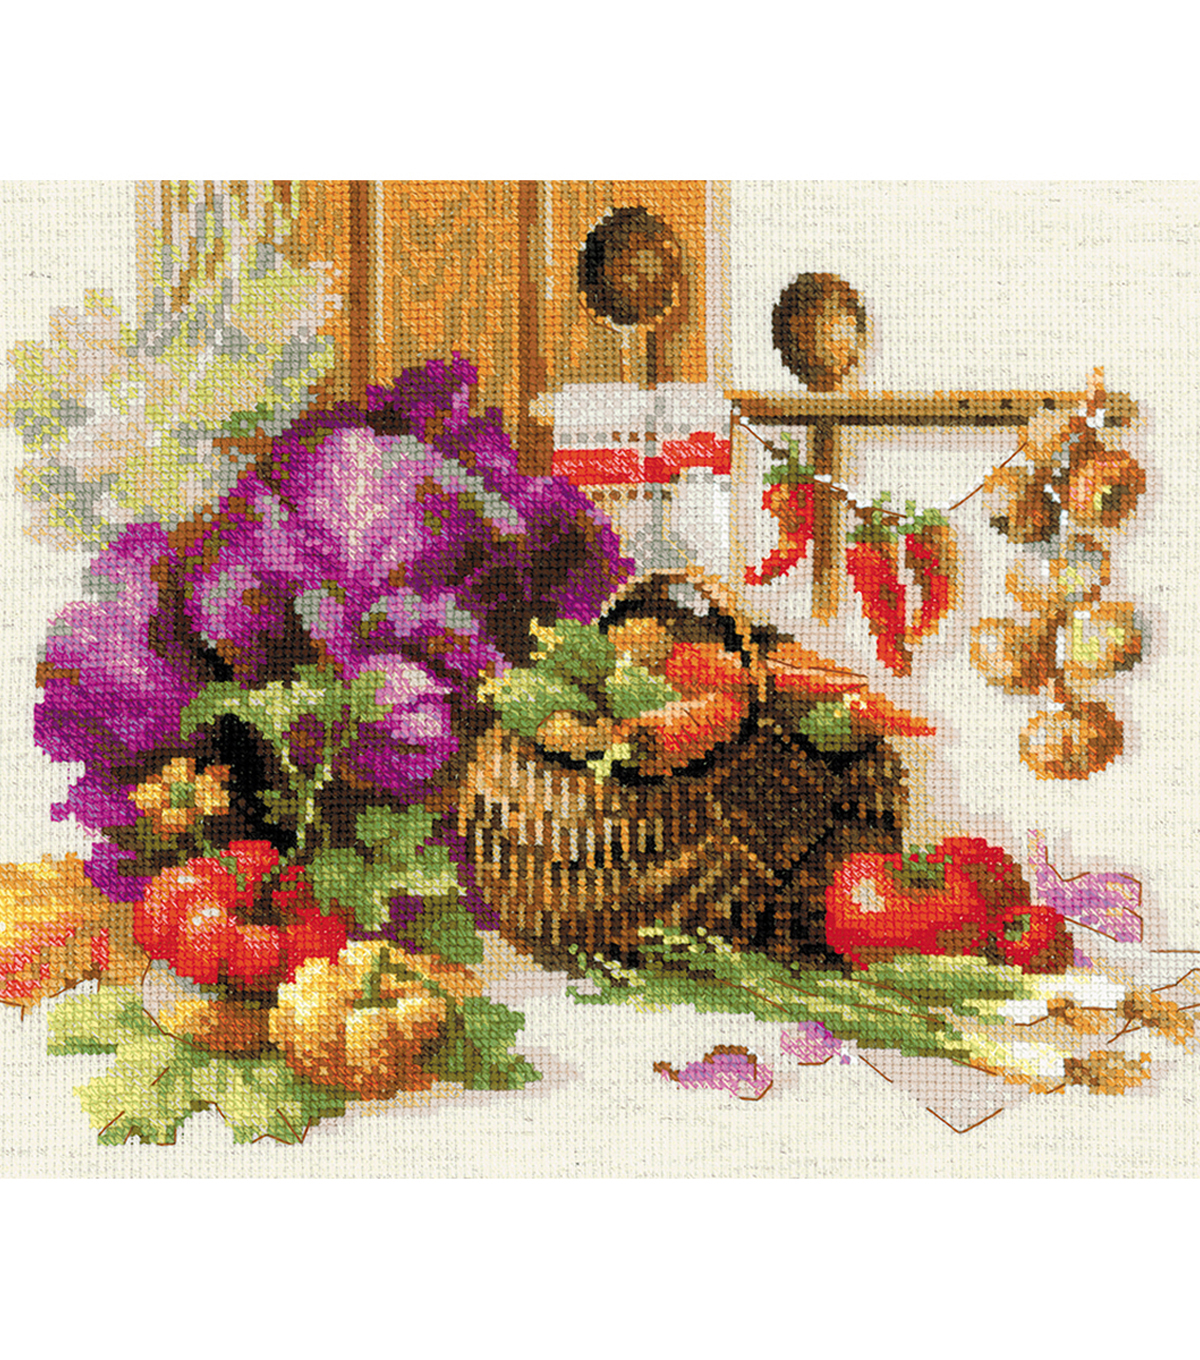 RIOLIS 15.75\u0027\u0027x11.75\u0027\u0027 Counted Cross Stitch Kit-Rich Harvest